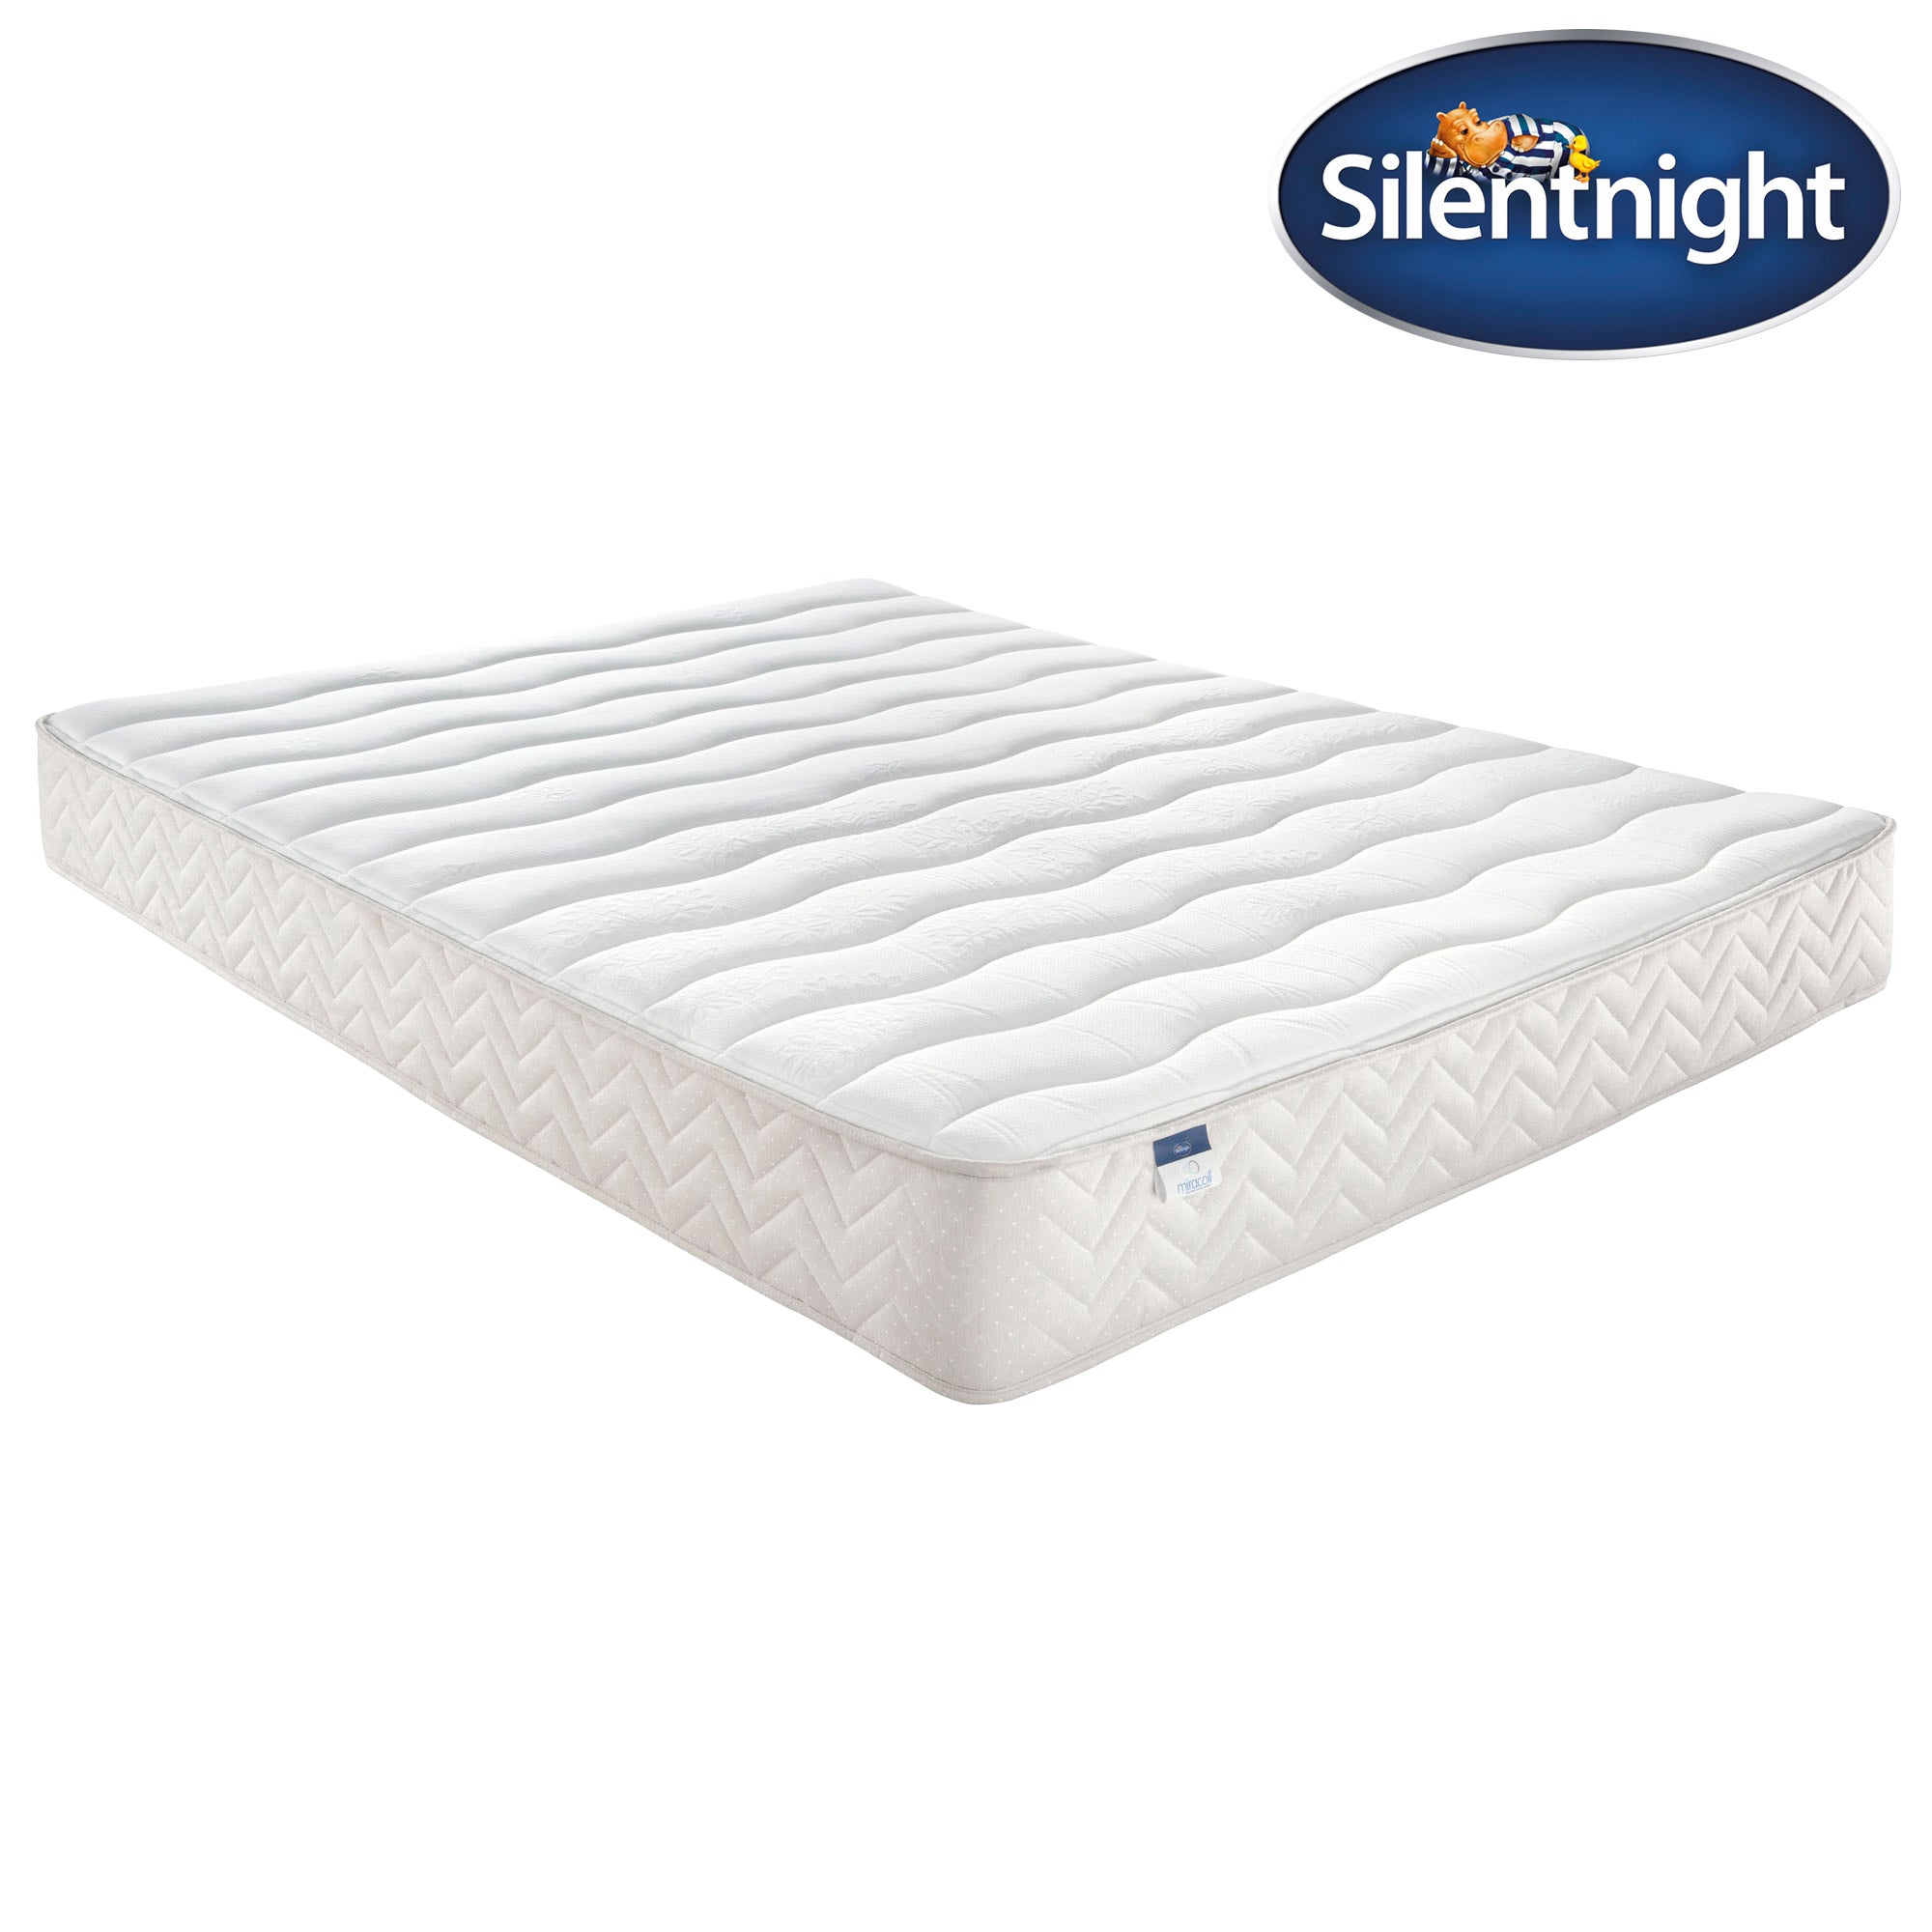 Silentnight Westminster Mattress